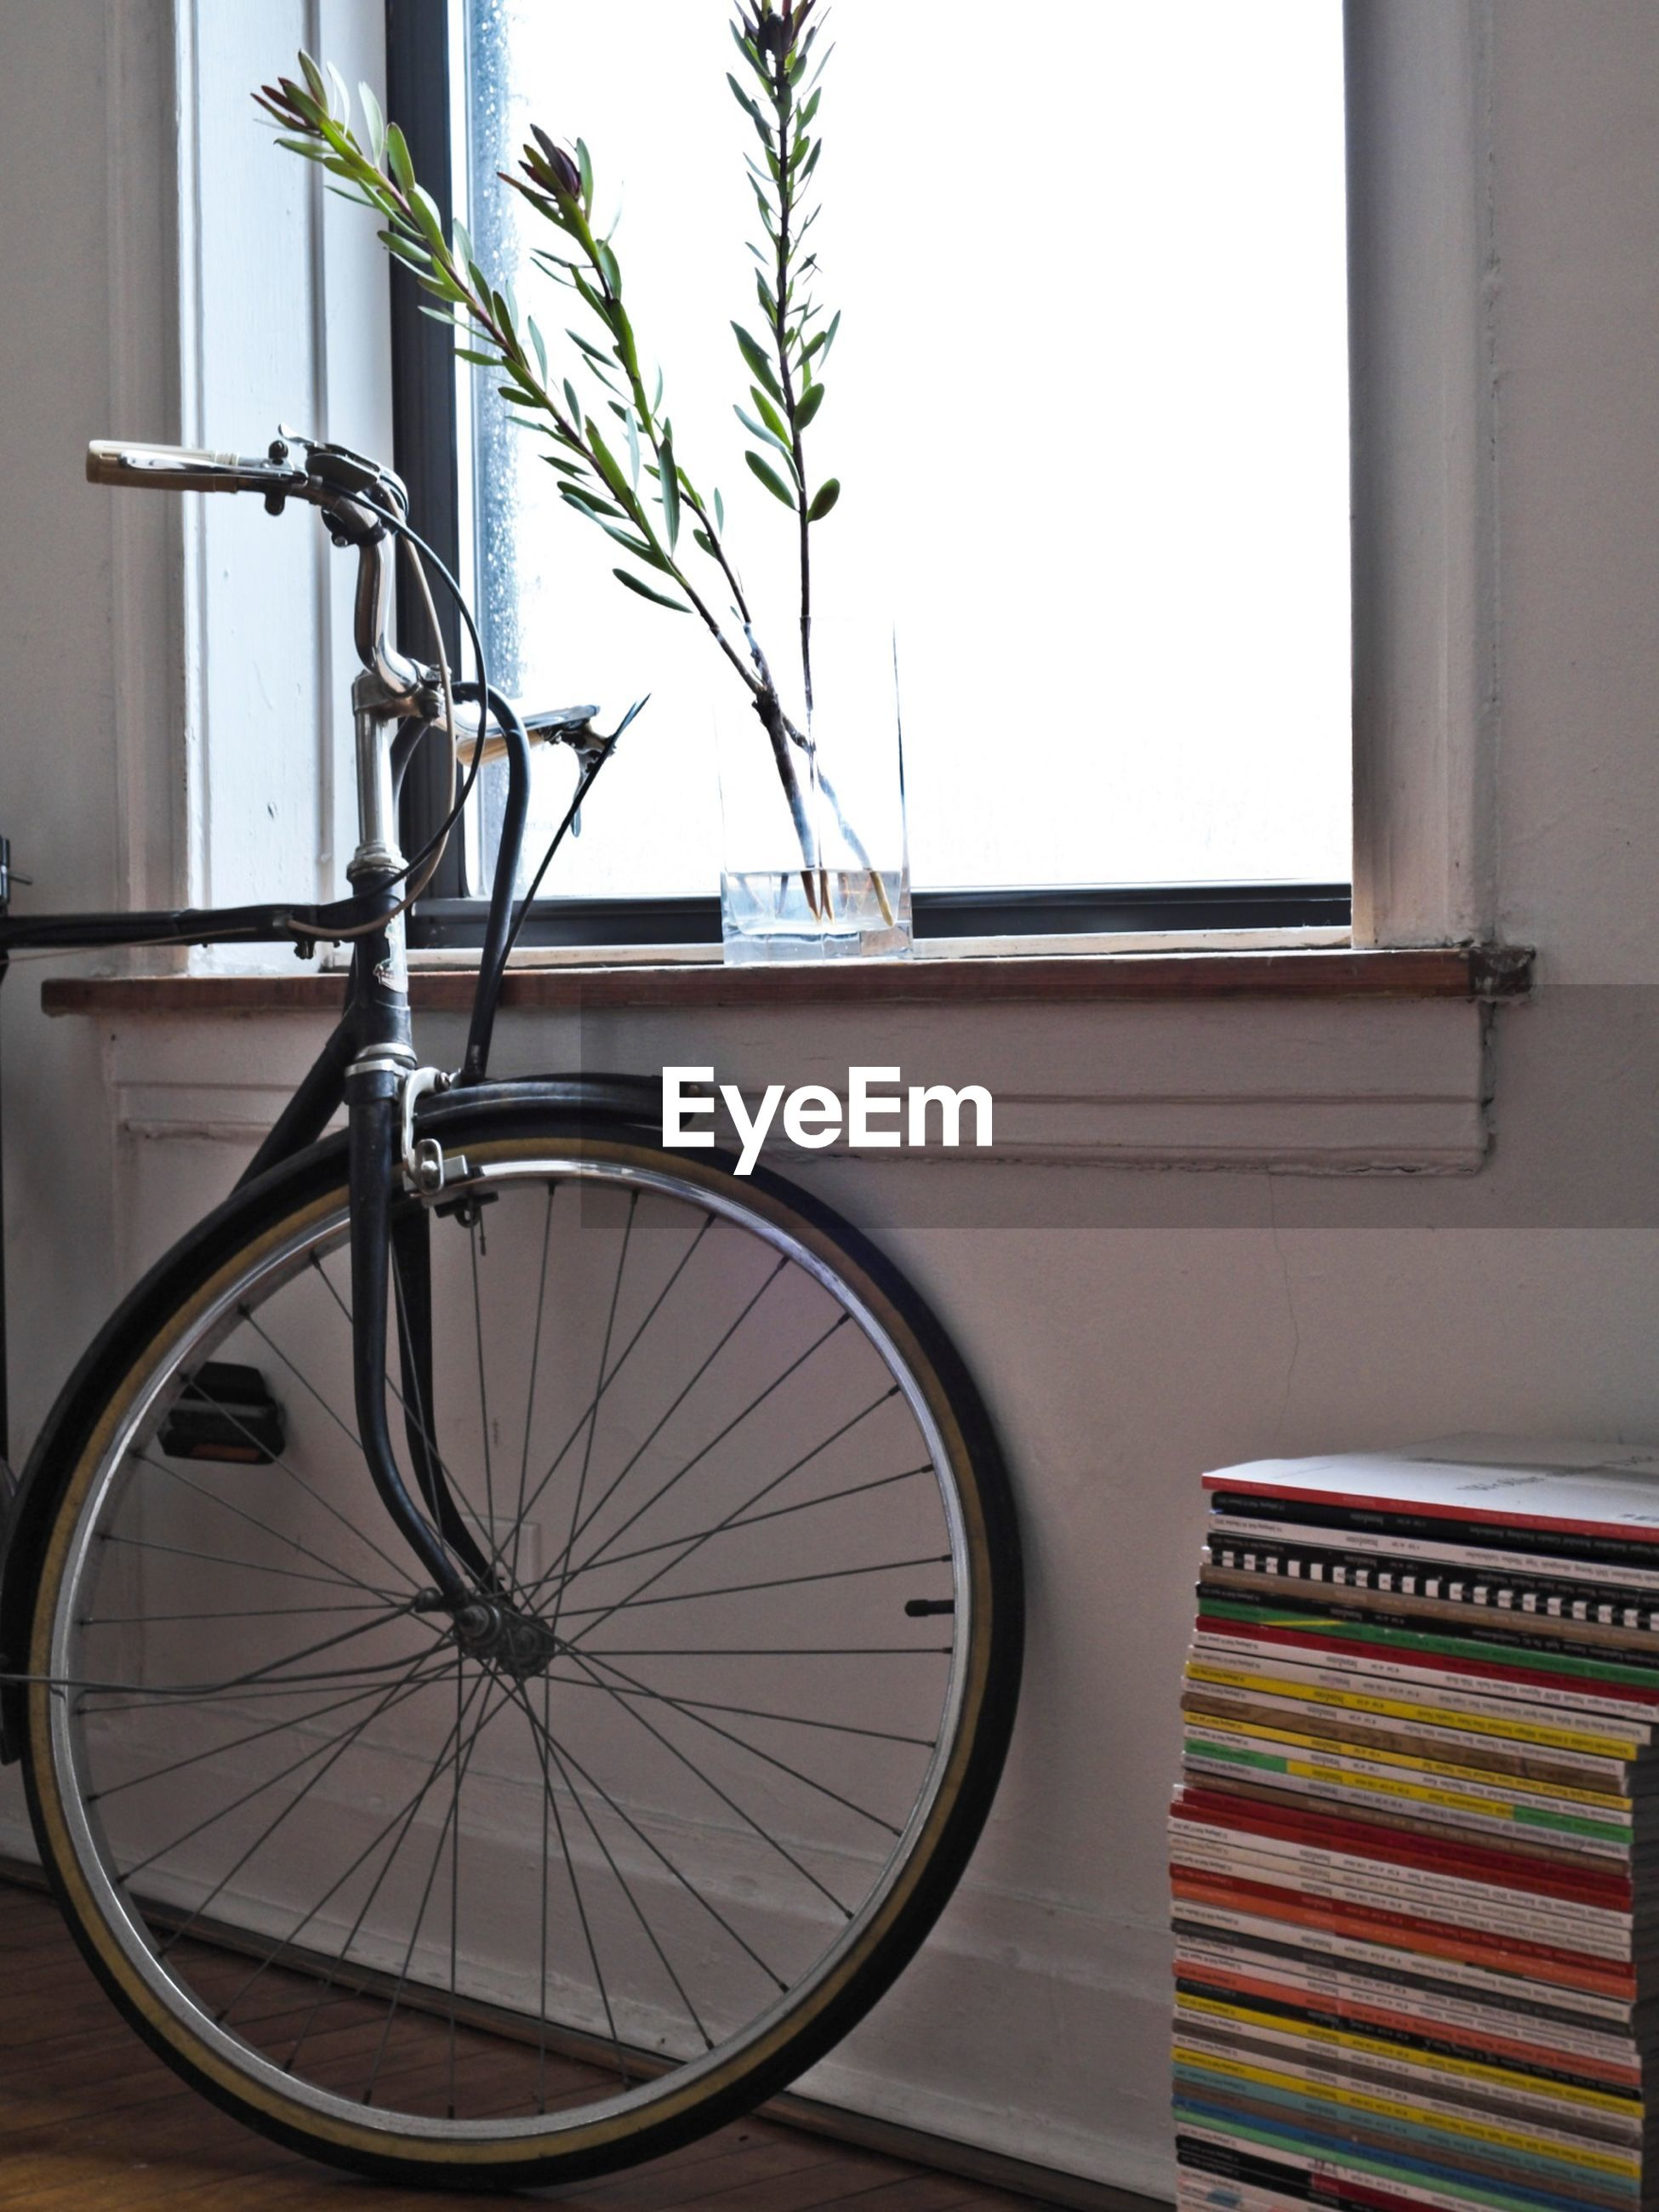 Bicycle parked safely inside house next to stack of book against window wall